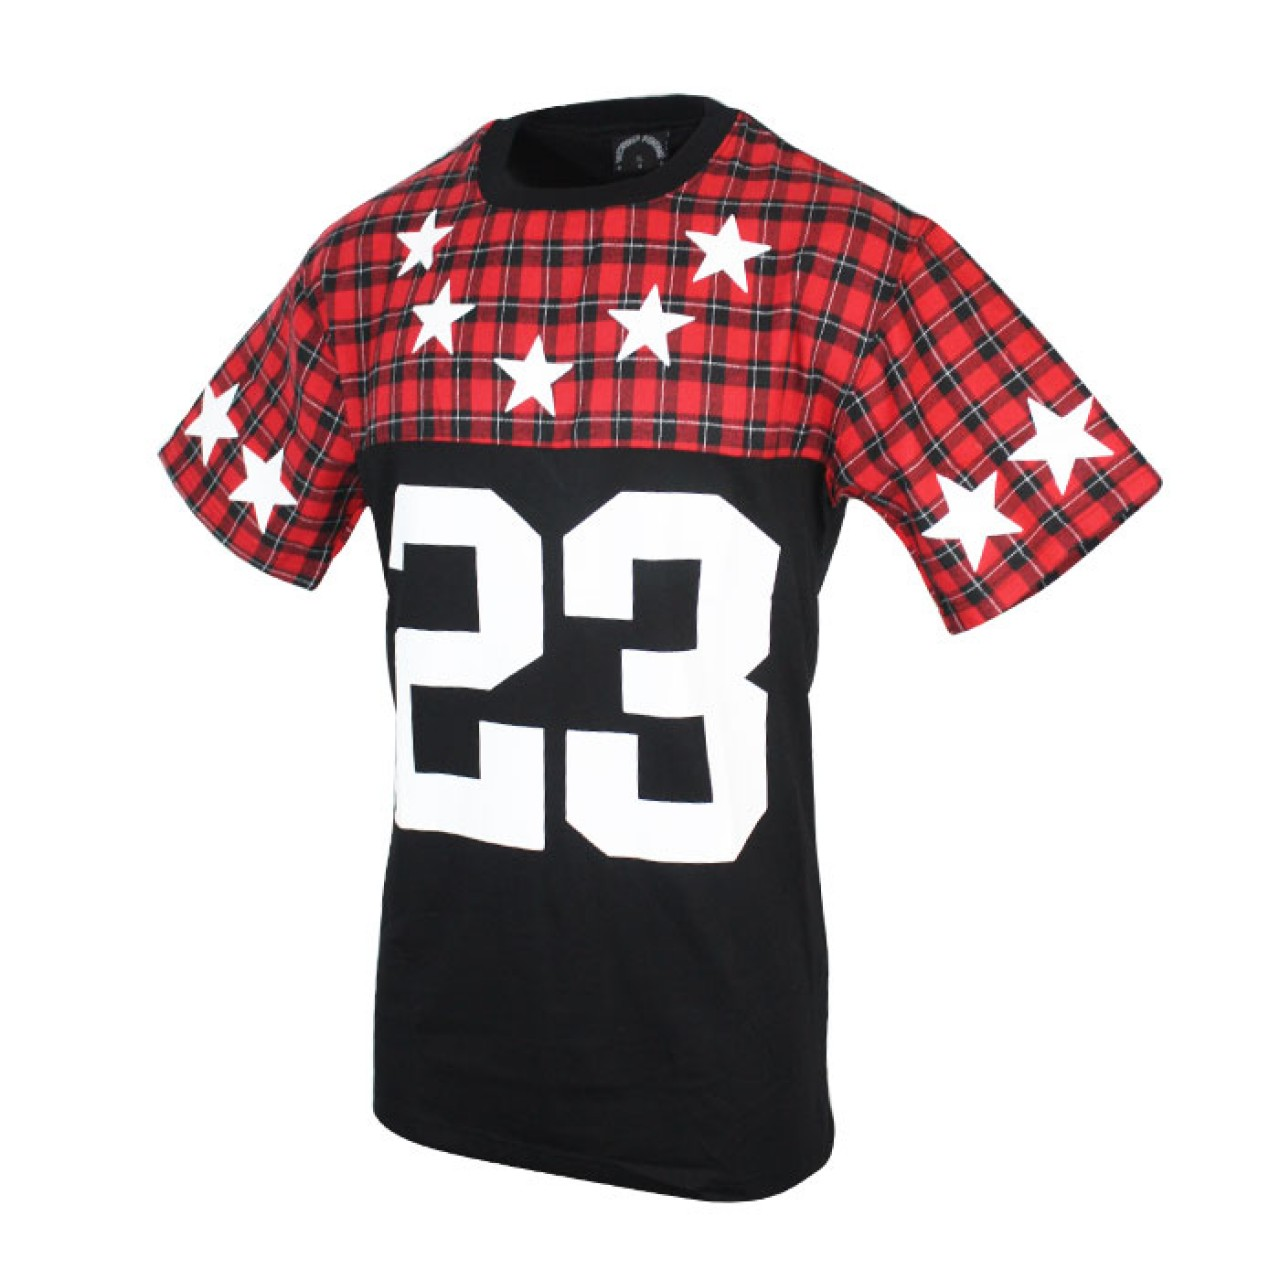 Men's Red Black Checked Printed Casual Tees